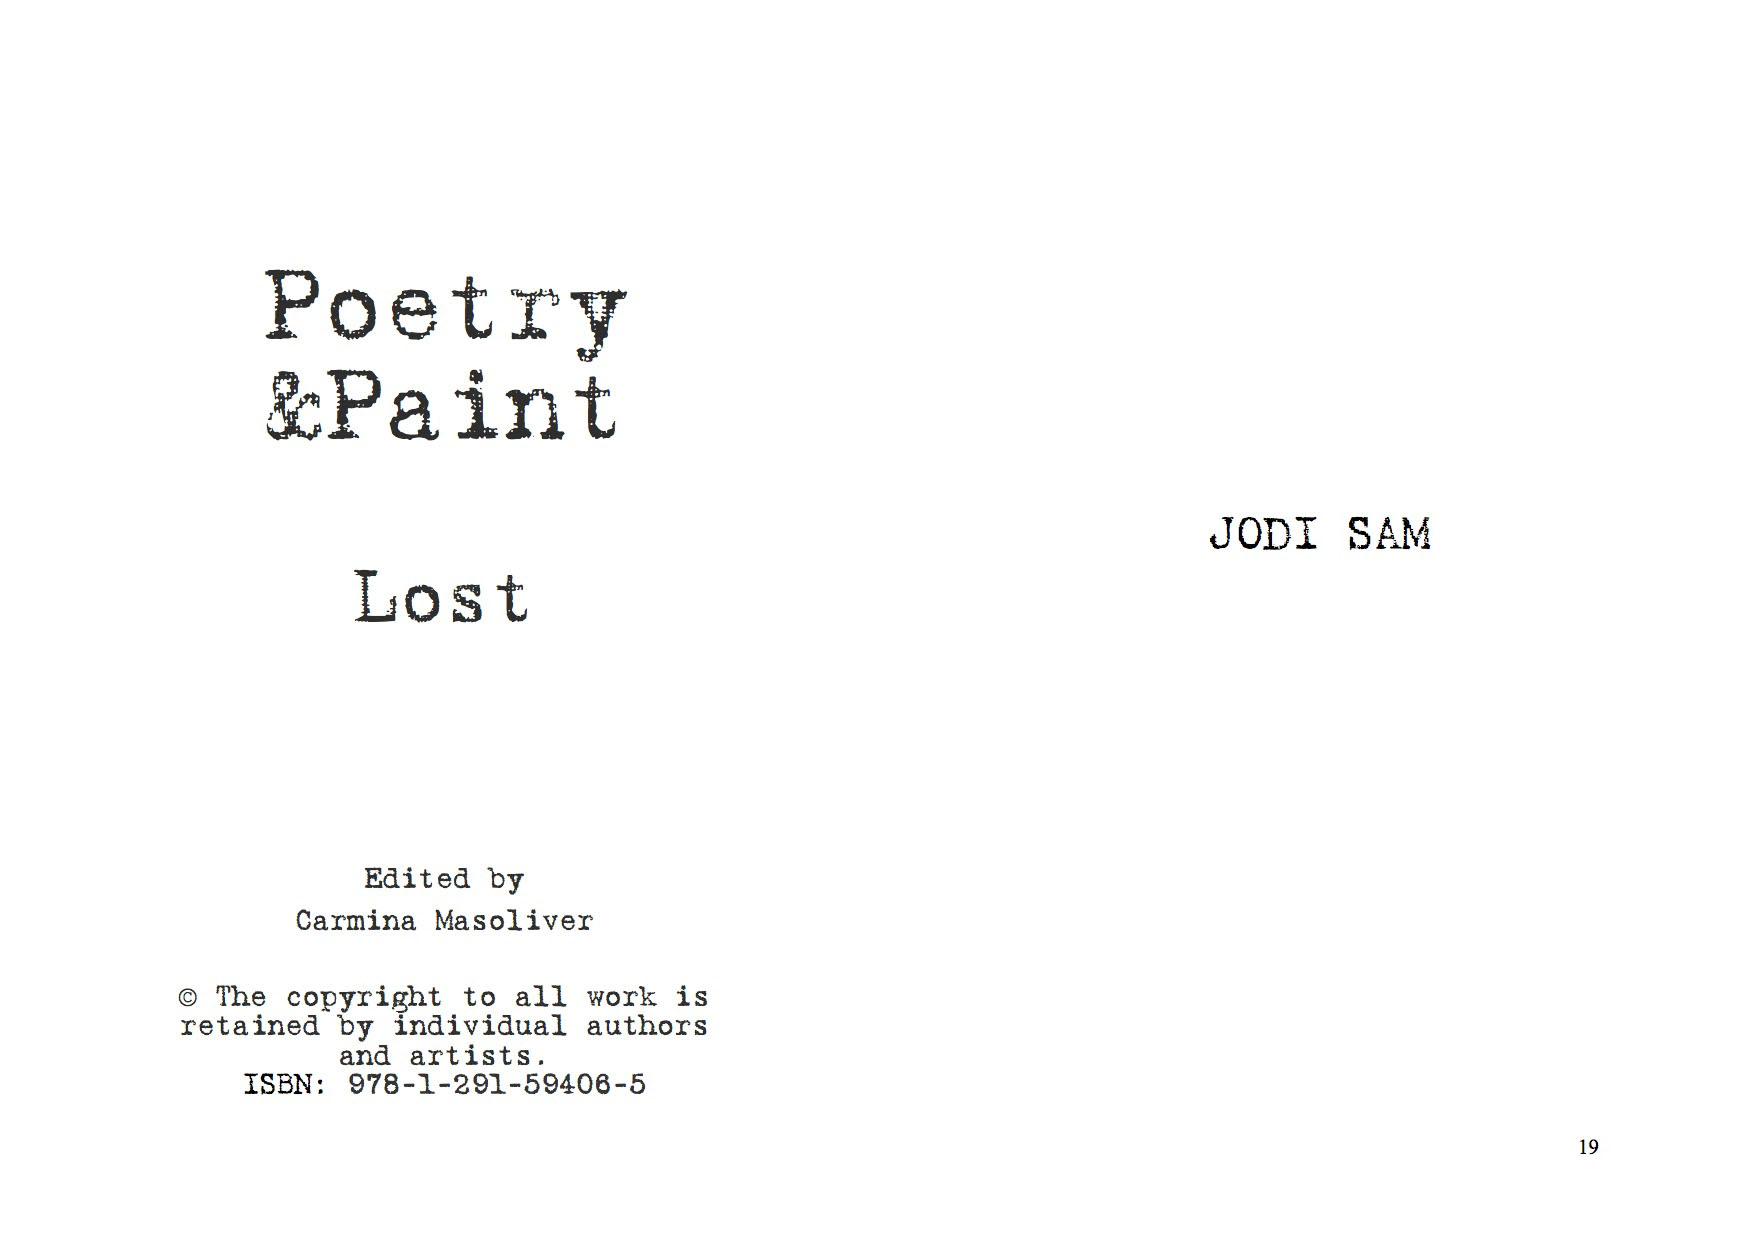 poetry & paint anthology lost jodi sam cover page.jpg